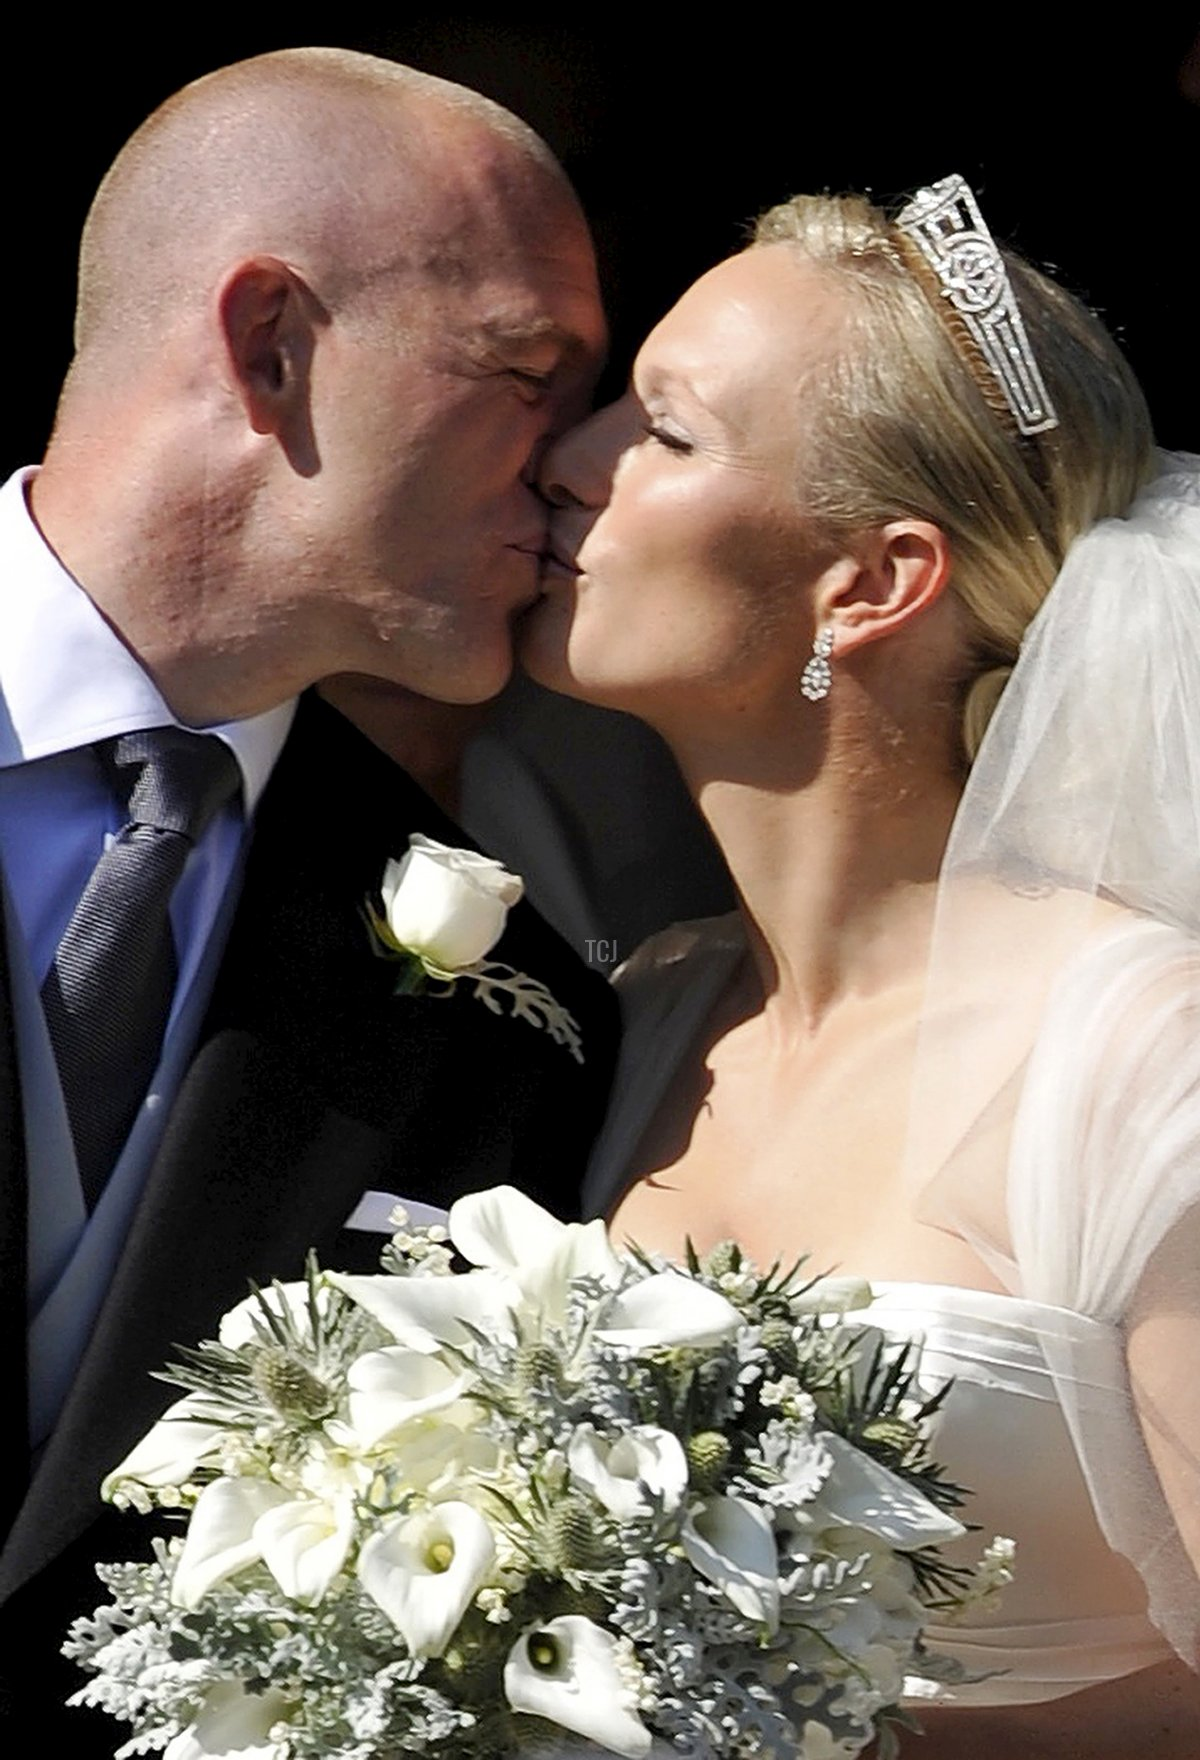 England rugby player Mike Tindall (L) kisses his new bride Britain's Zara Phillips, granddaughter of Queen Elizabeth II, after their wedding ceremony at Canongate Kirk in Edinburgh, Scotland, on July 30, 2011